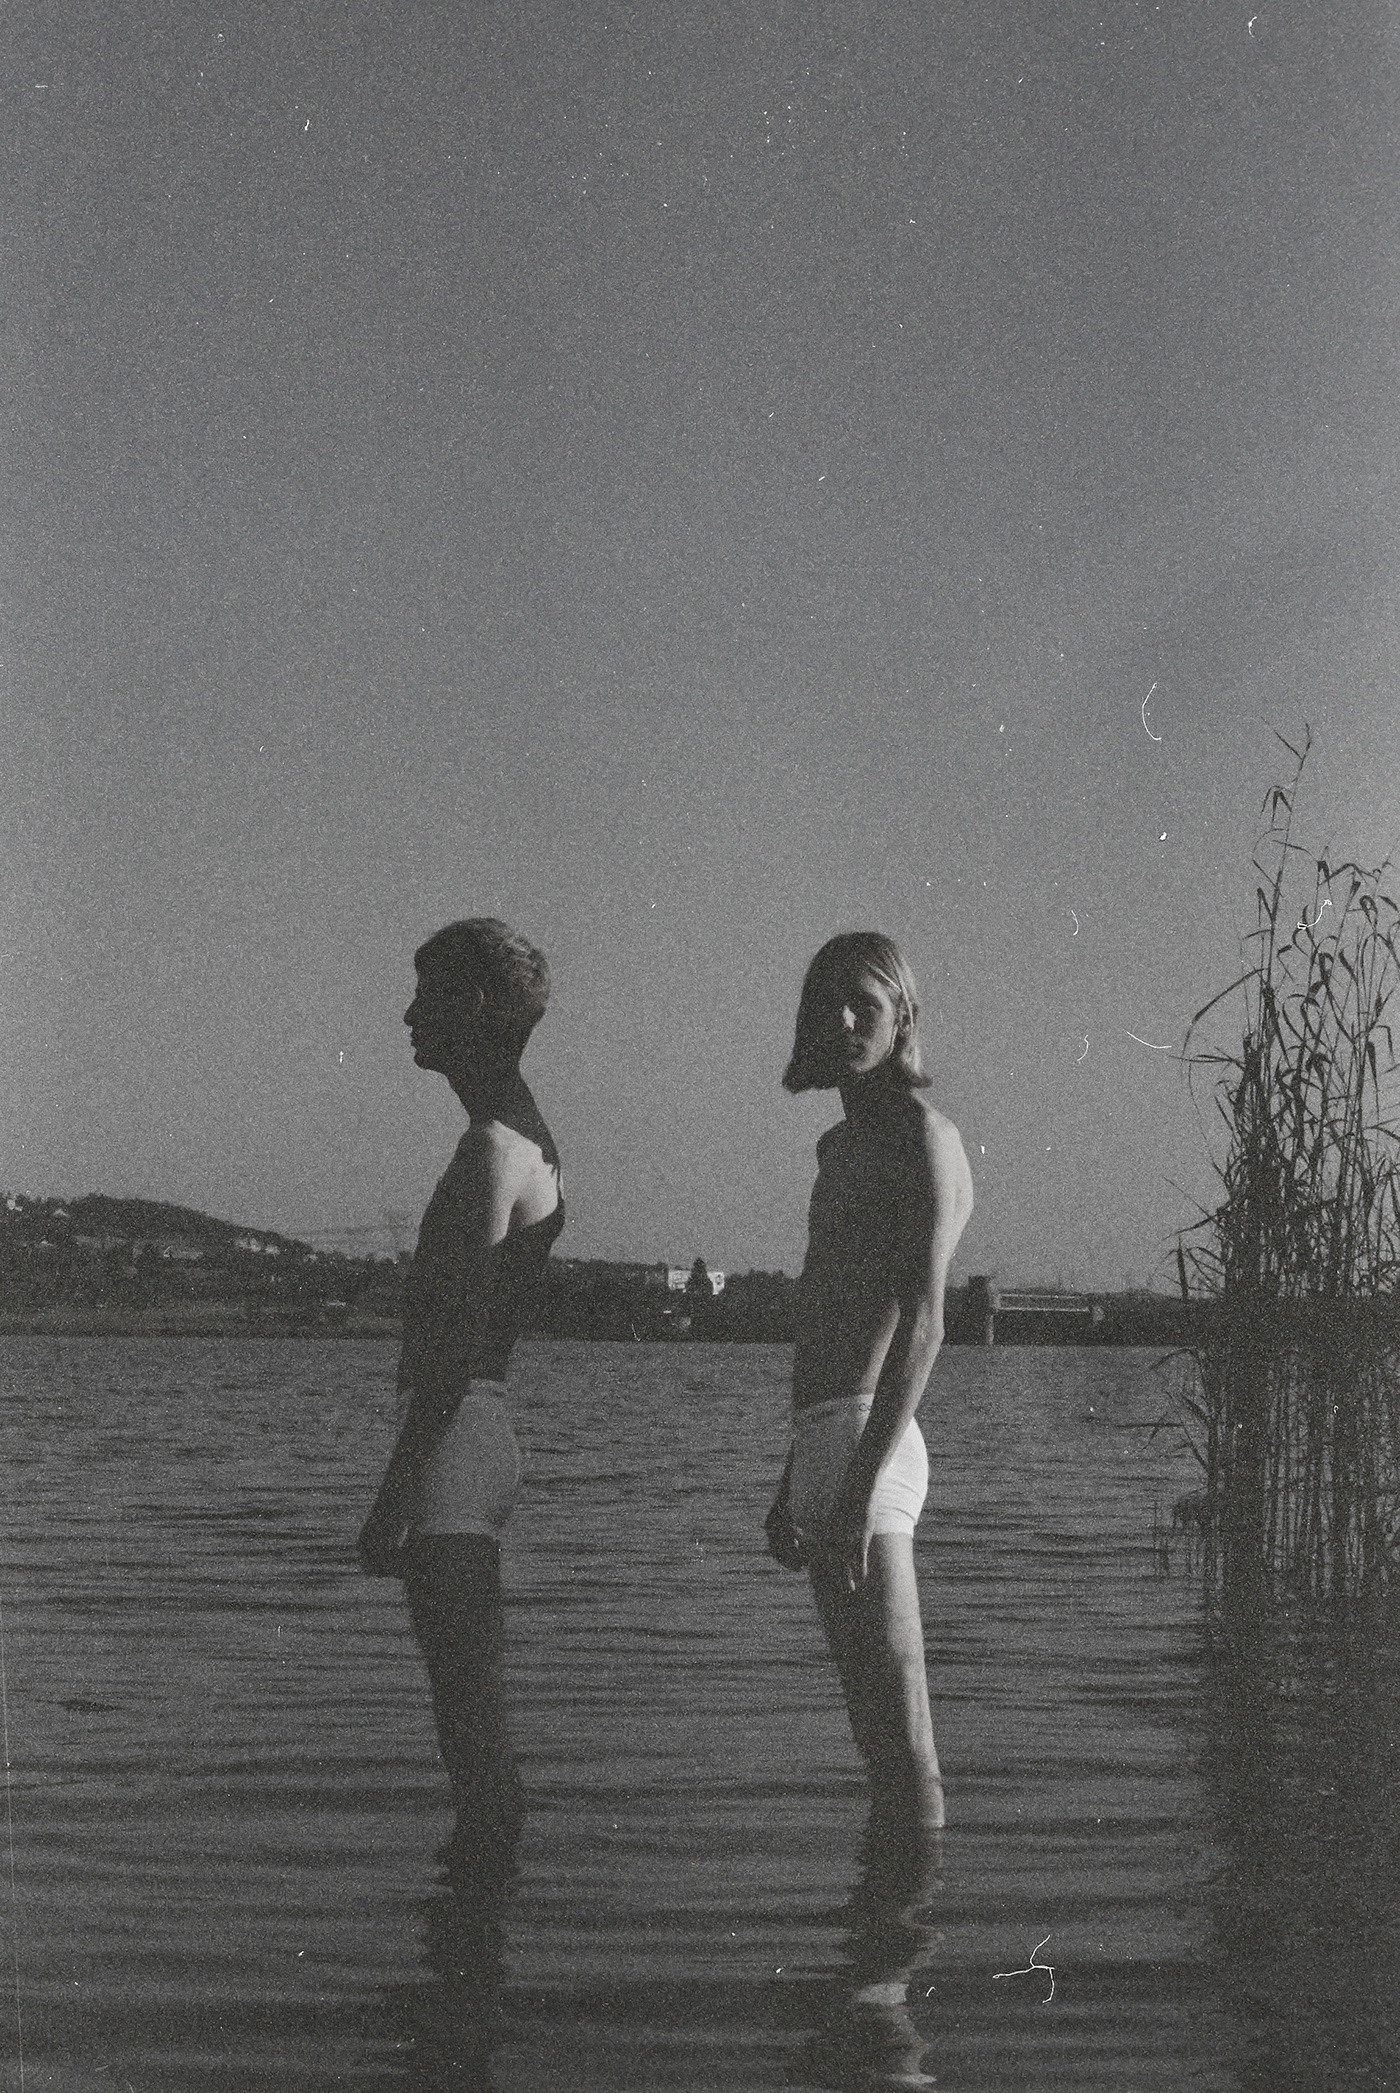 black and white conceptual Film   Photography  Twins